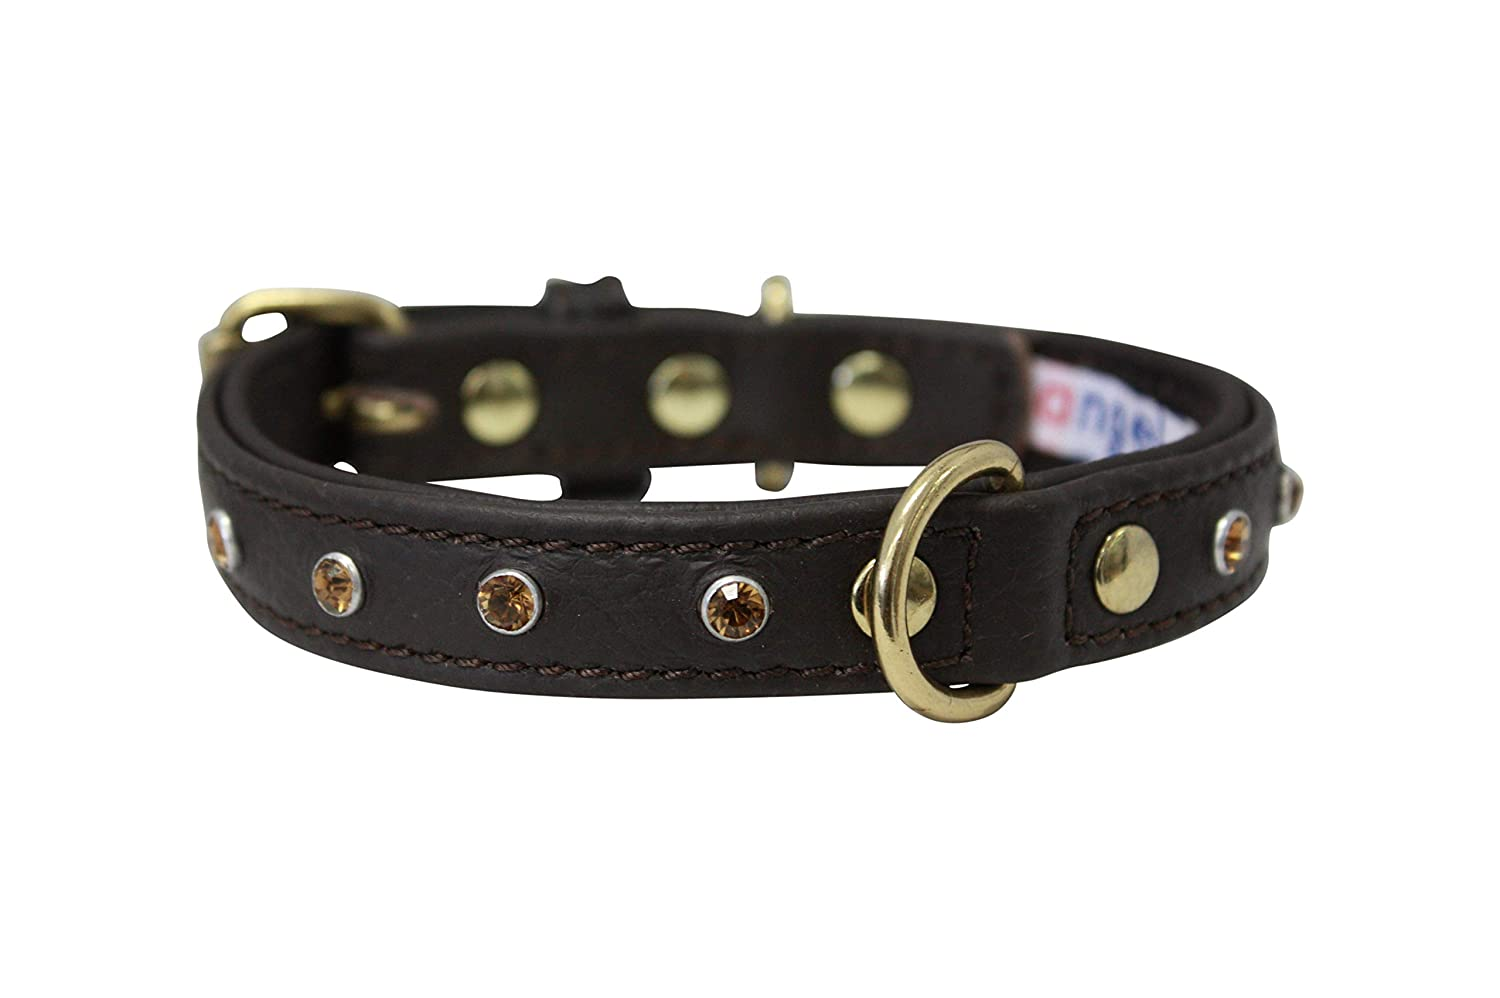 Rhinestones Bling Leather Dog Collar, Padded, Double-Ply, Riveted Settings, 12  x 5 8 , Brown. Stainless Steel (Athens) For Neck Size  8.5  10.5